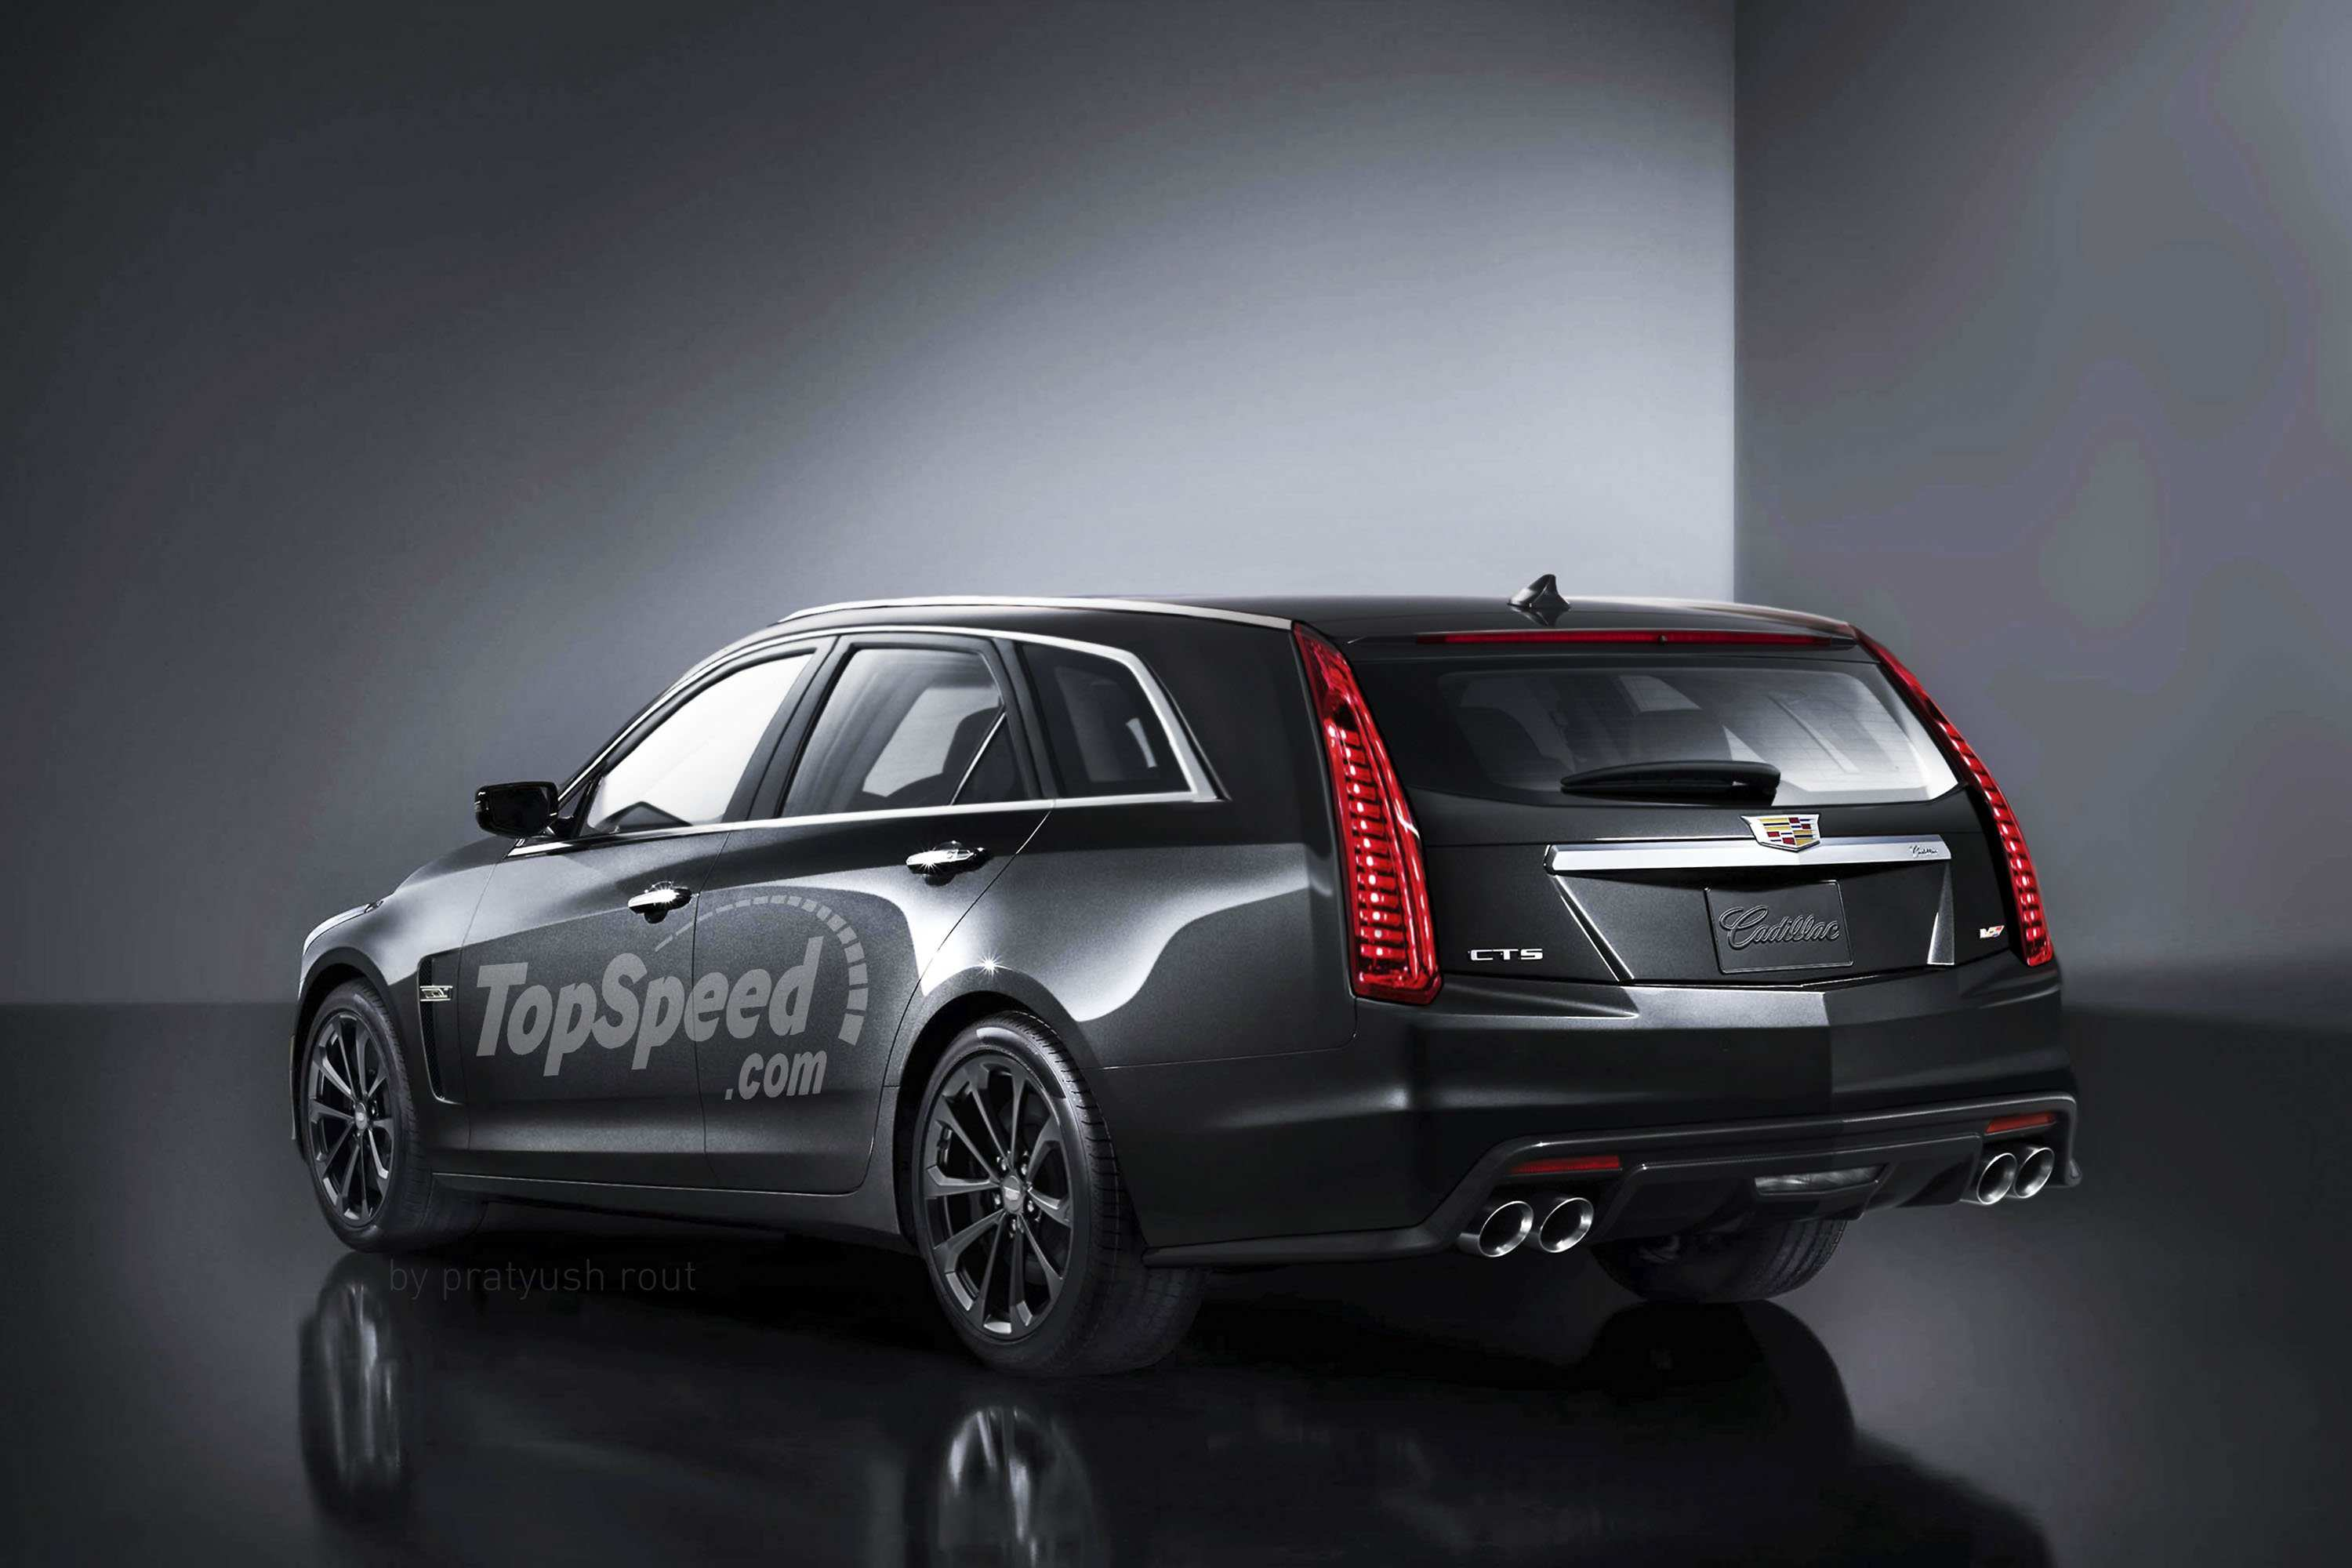 47 Concept of 2019 Cadillac Dts Configurations with 2019 Cadillac Dts